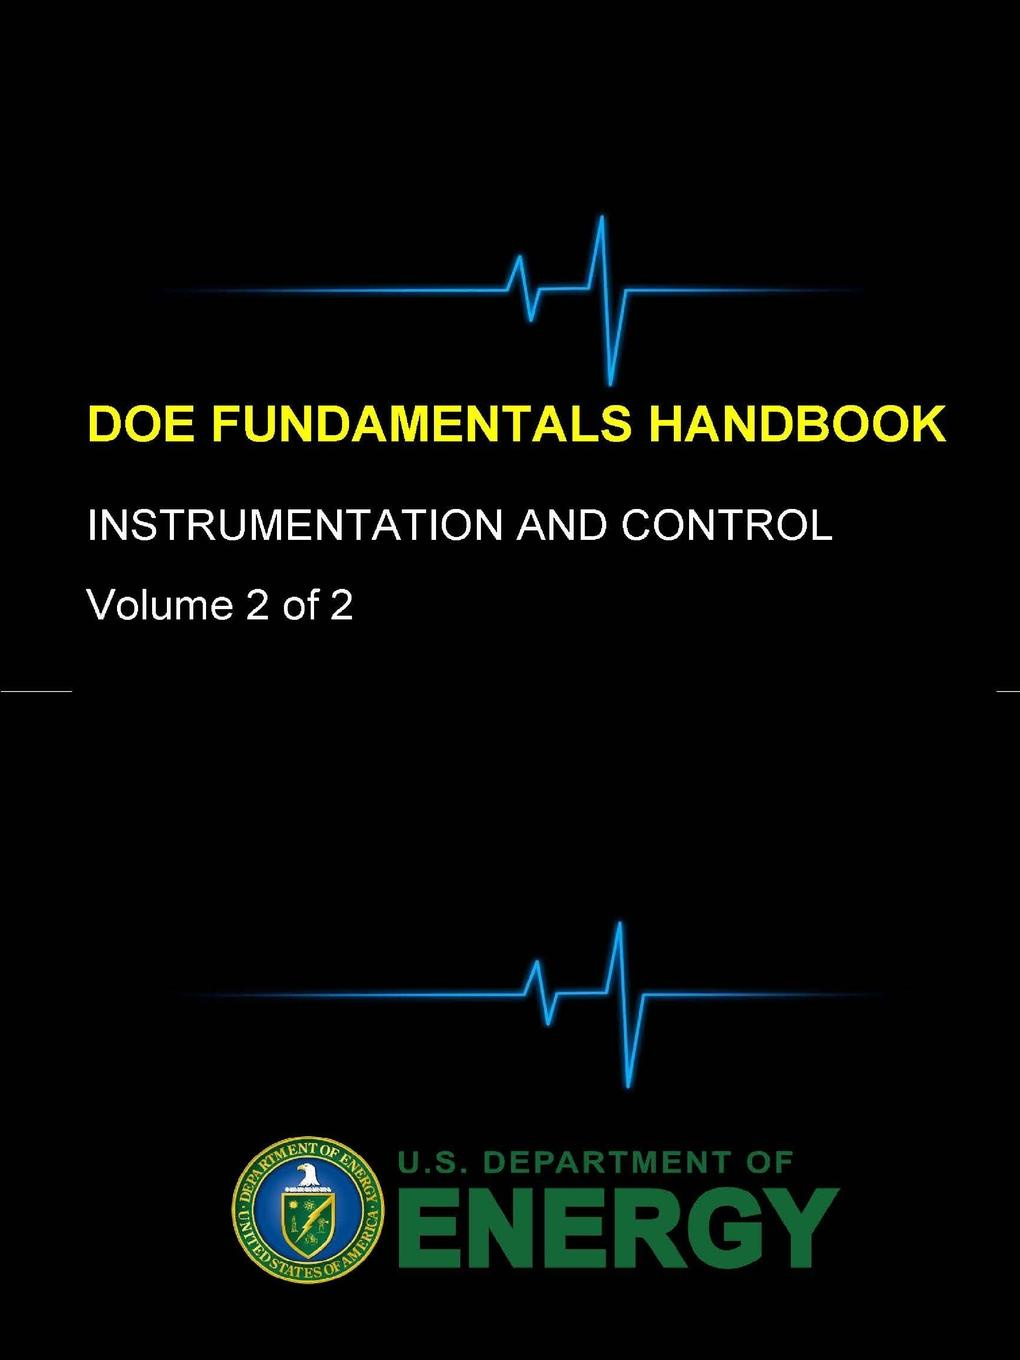 U.S. Department of Energy DOE Fundamentals Handbook - Instrumentation and Control (Volume 2 of 2)